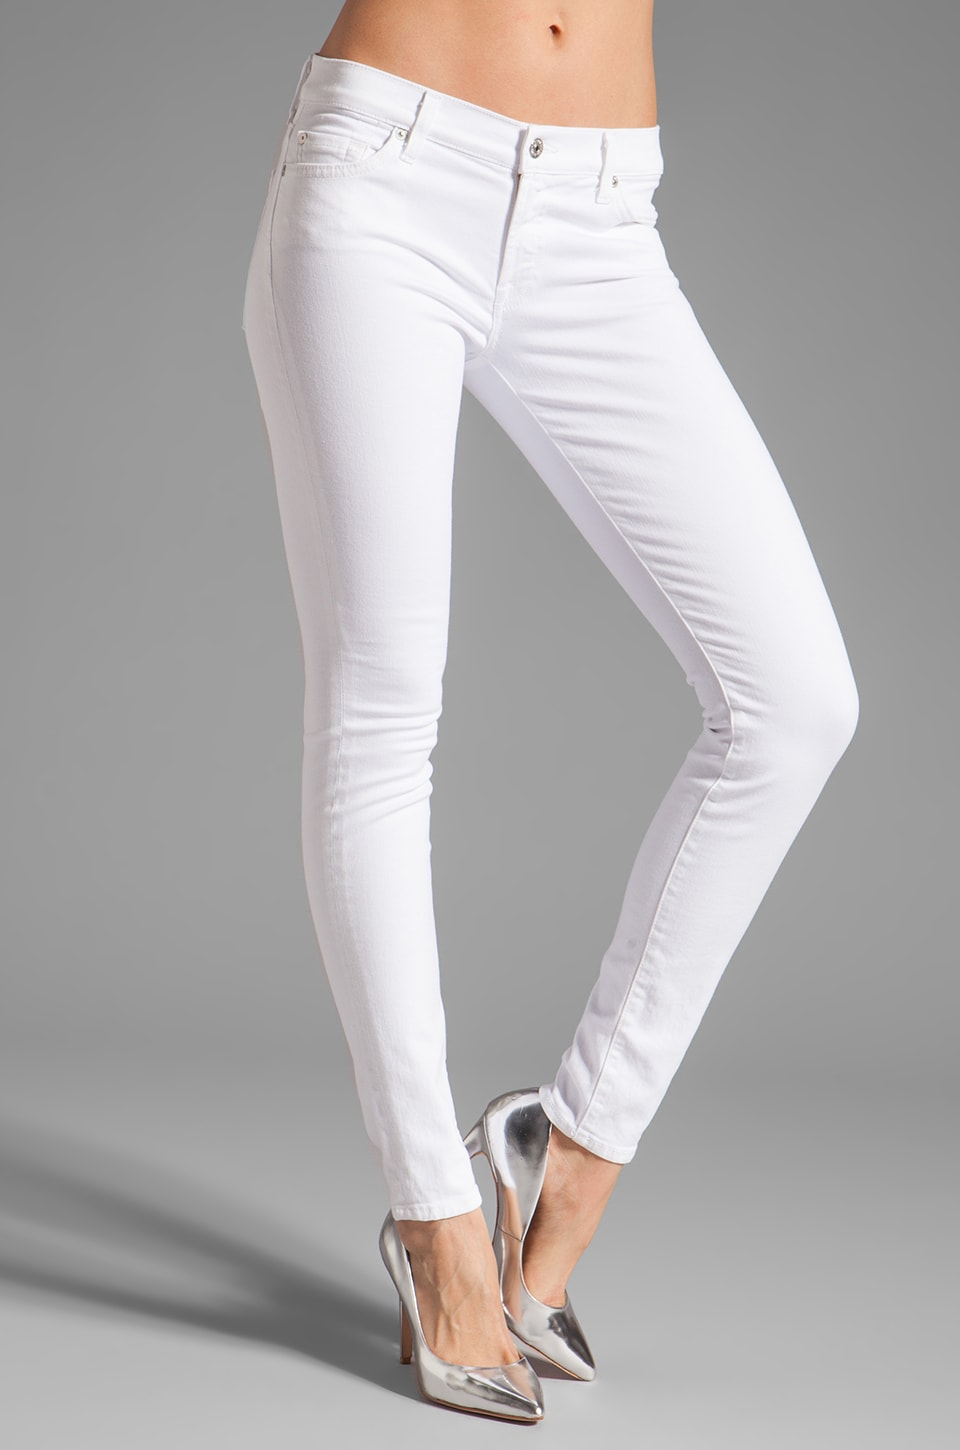 7 For All Mankind The Skinny Slim Illusion in Stark White